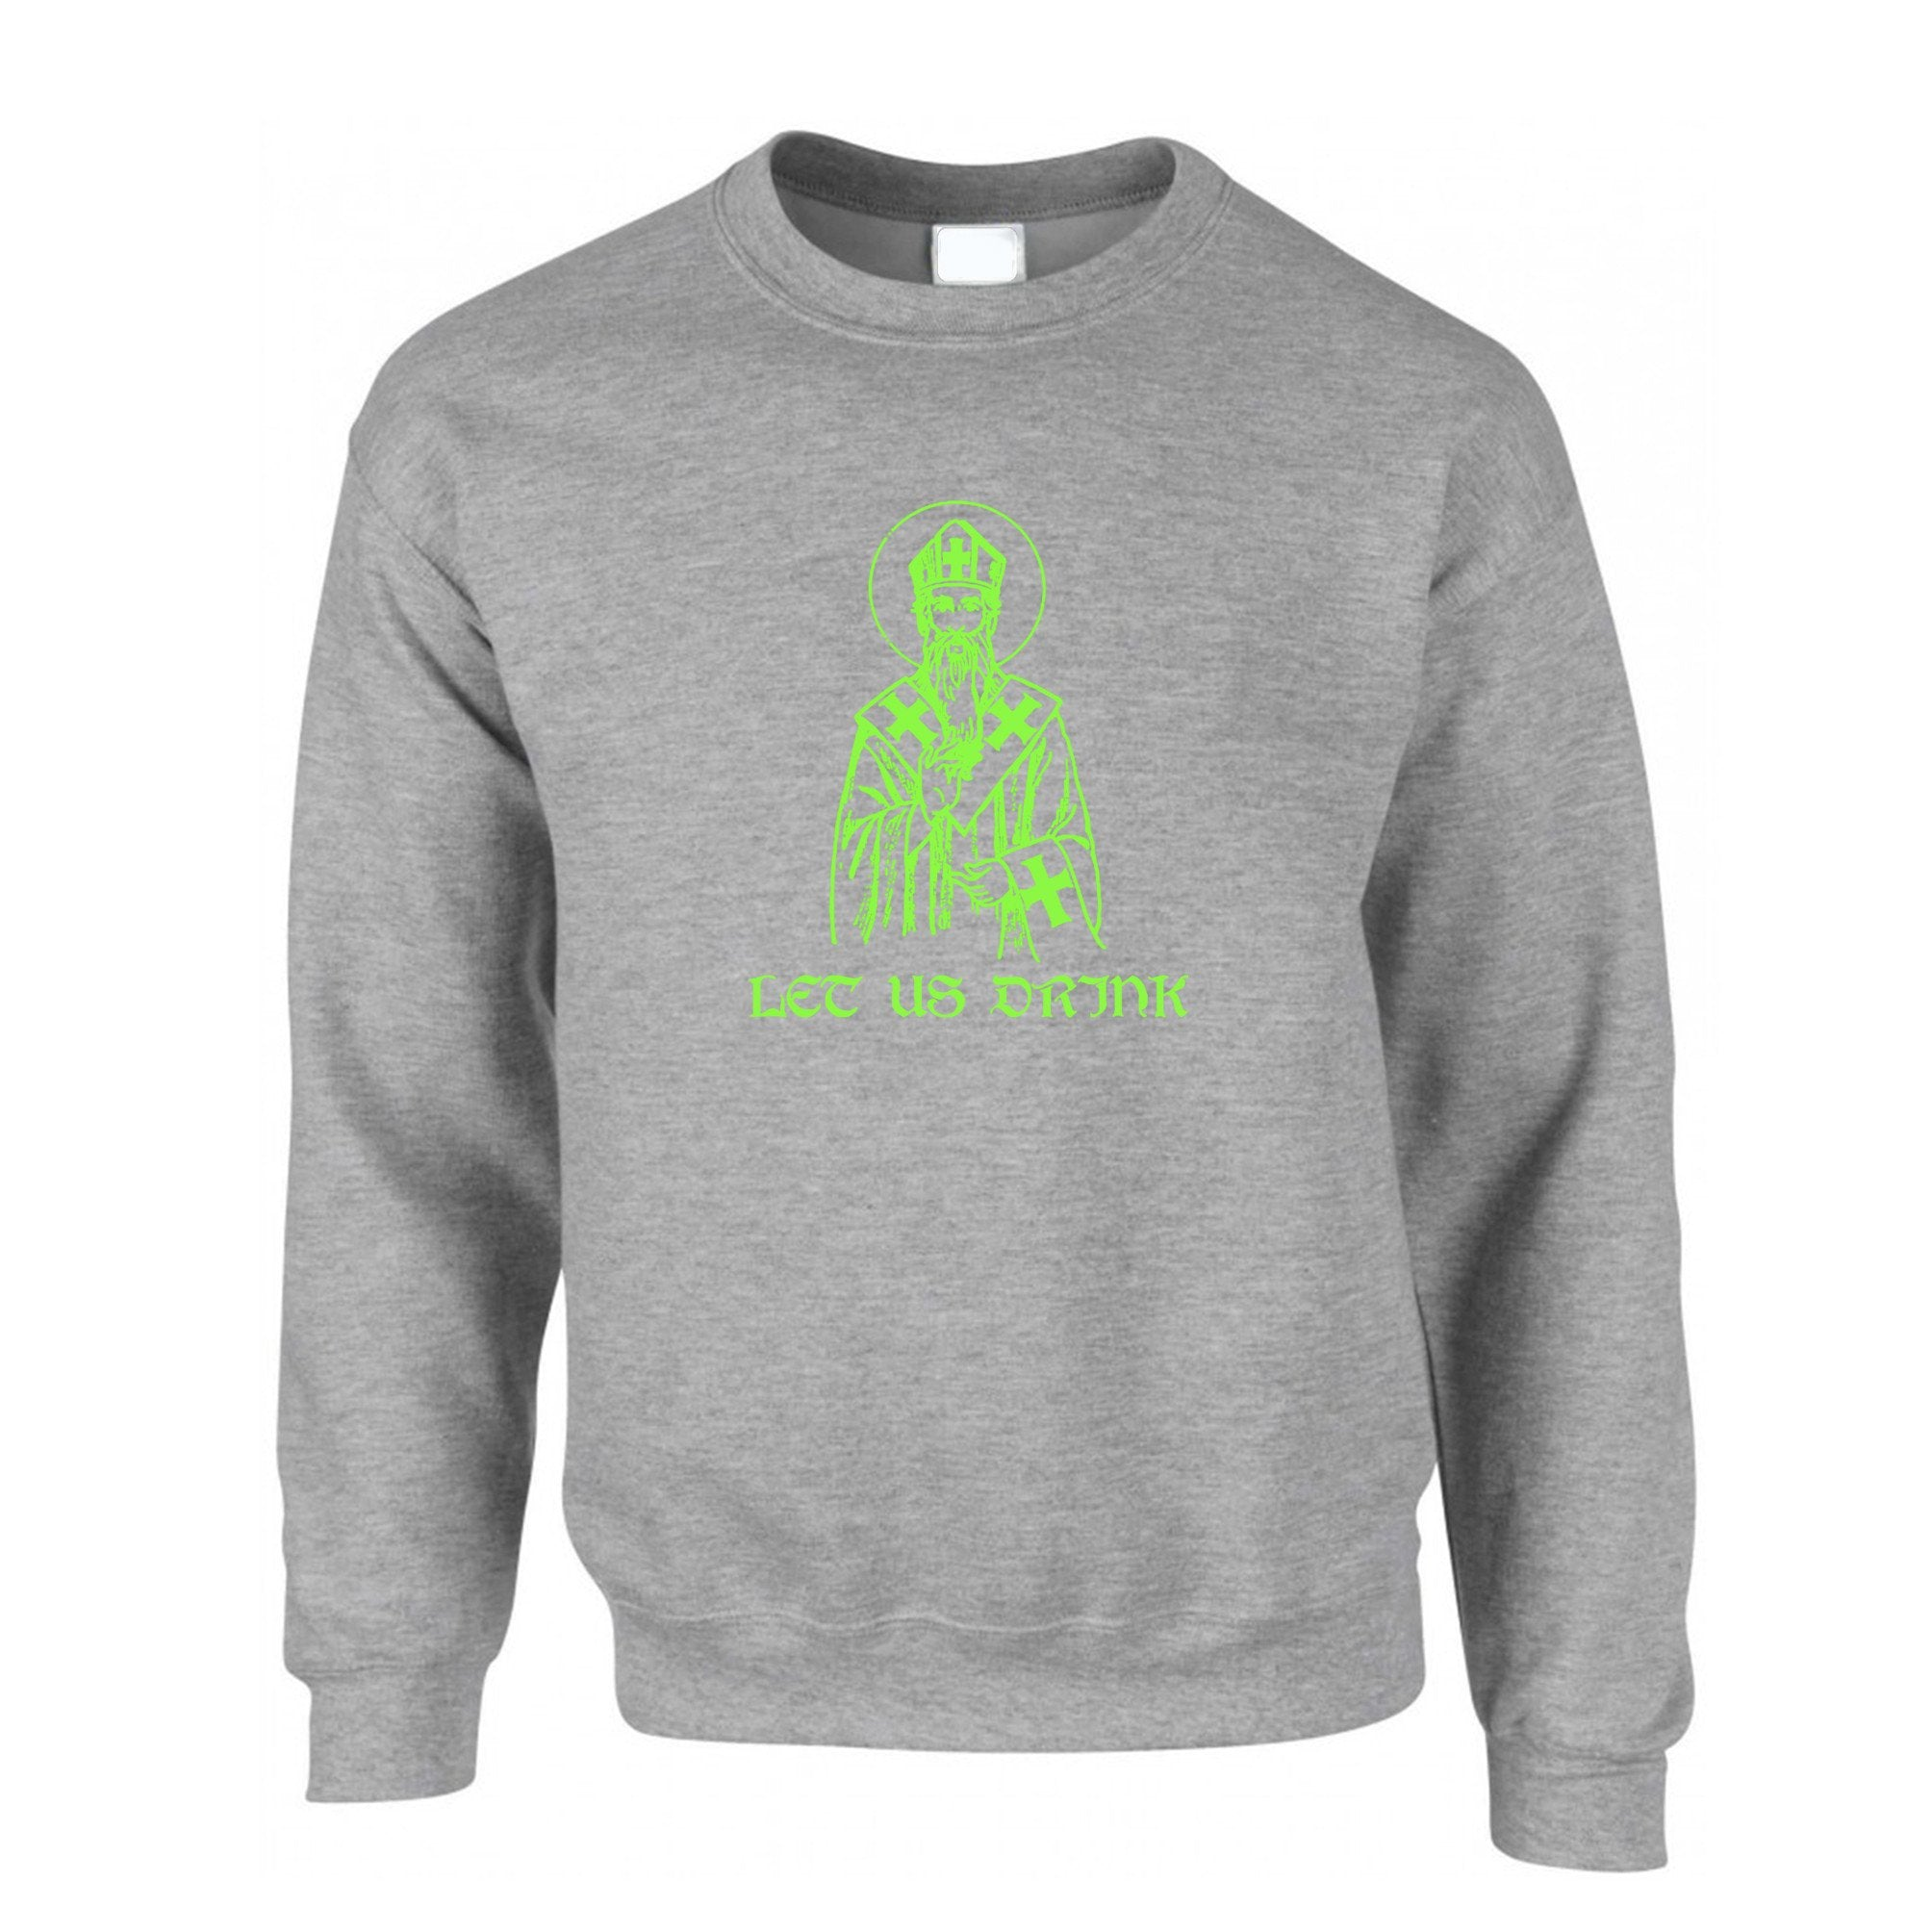 St Patrick's Day Jumper Let Us Drink Saint Paddy Sweatshirt Sweater